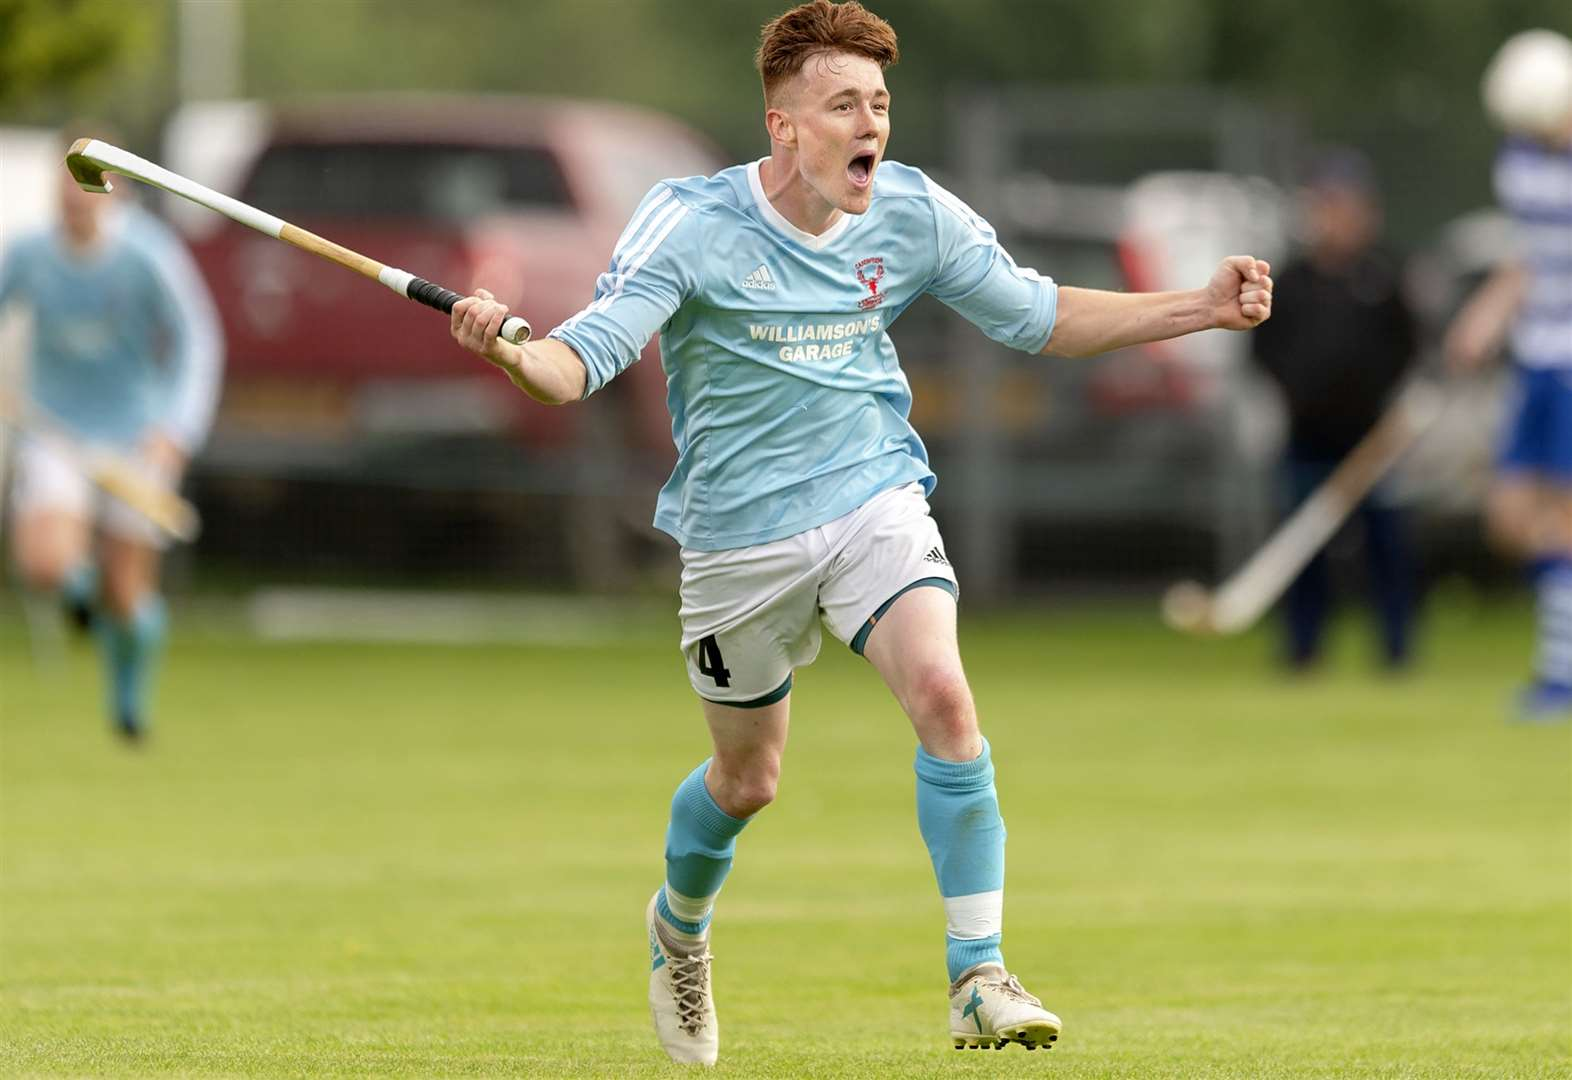 Caberfeidh trio sign for Beauly ahead of new shinty season